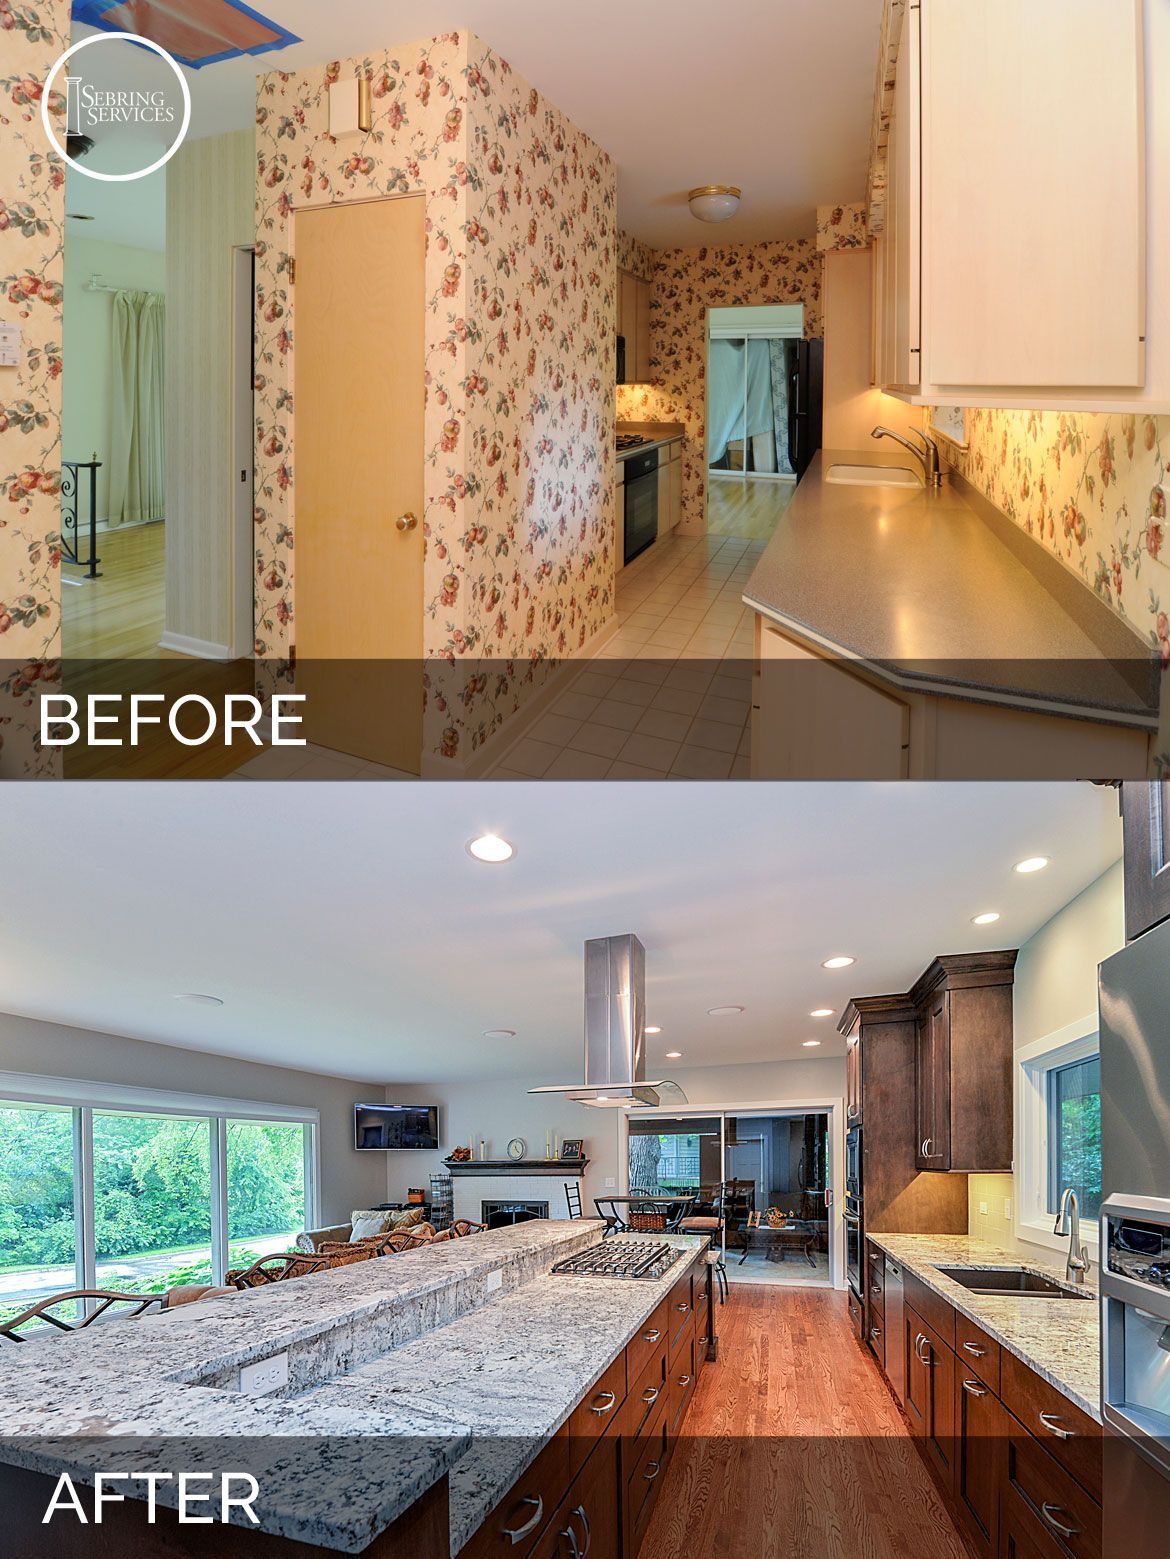 Dan ann 39 s kitchen before after pictures home design - Diy bathroom remodel before and after ...